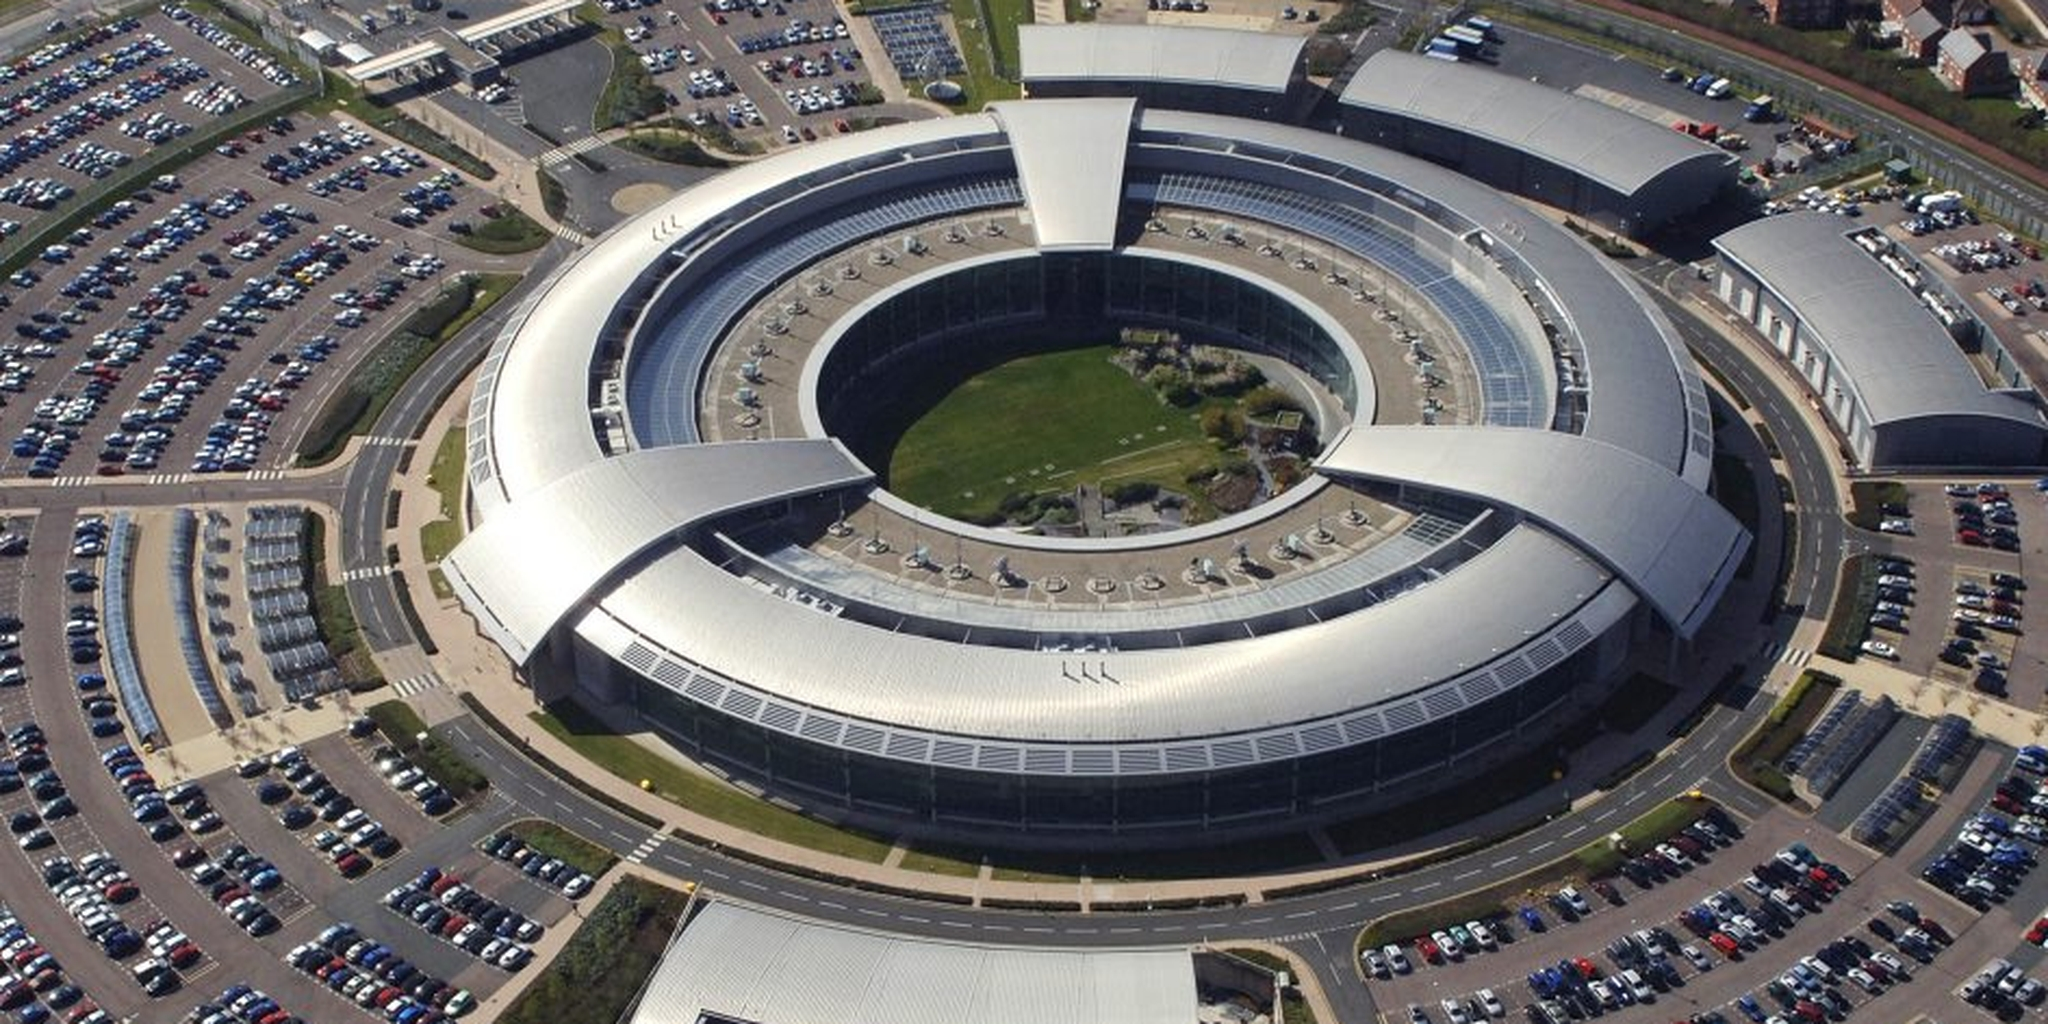 All sizes   GCHQ Building at Cheltenham, Gloucestershire   Flickr - Photo Sharing!